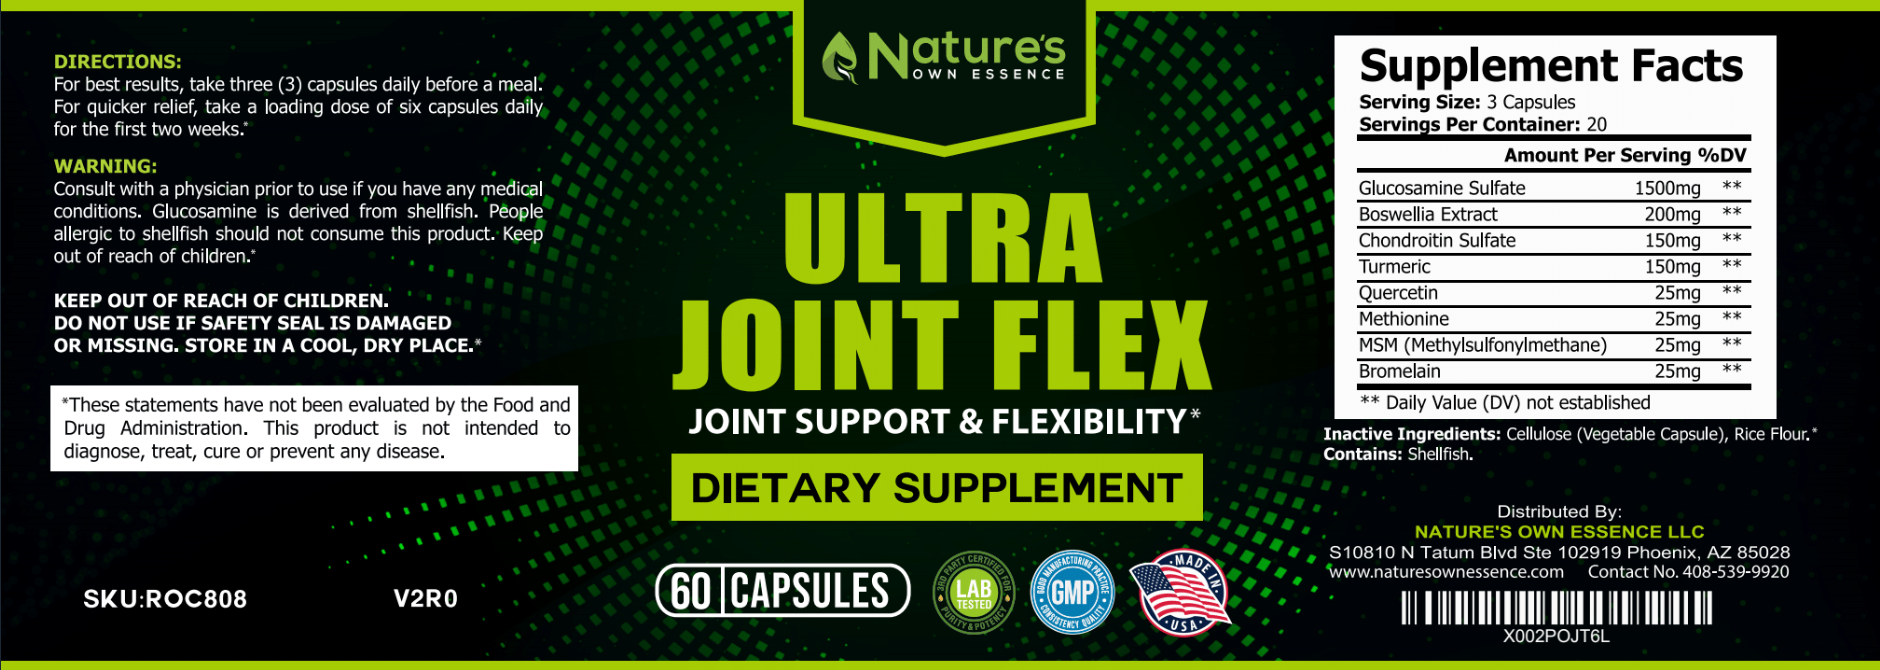 Glucosamine with Chondroitin Joint Supplement - Nature's Own Essence Ultra Joint Flex with MSM, Boswellia, and Turmeric for Men & Women - Healthy Knee Support & Natural Discomfort Relief - 60 Capsules